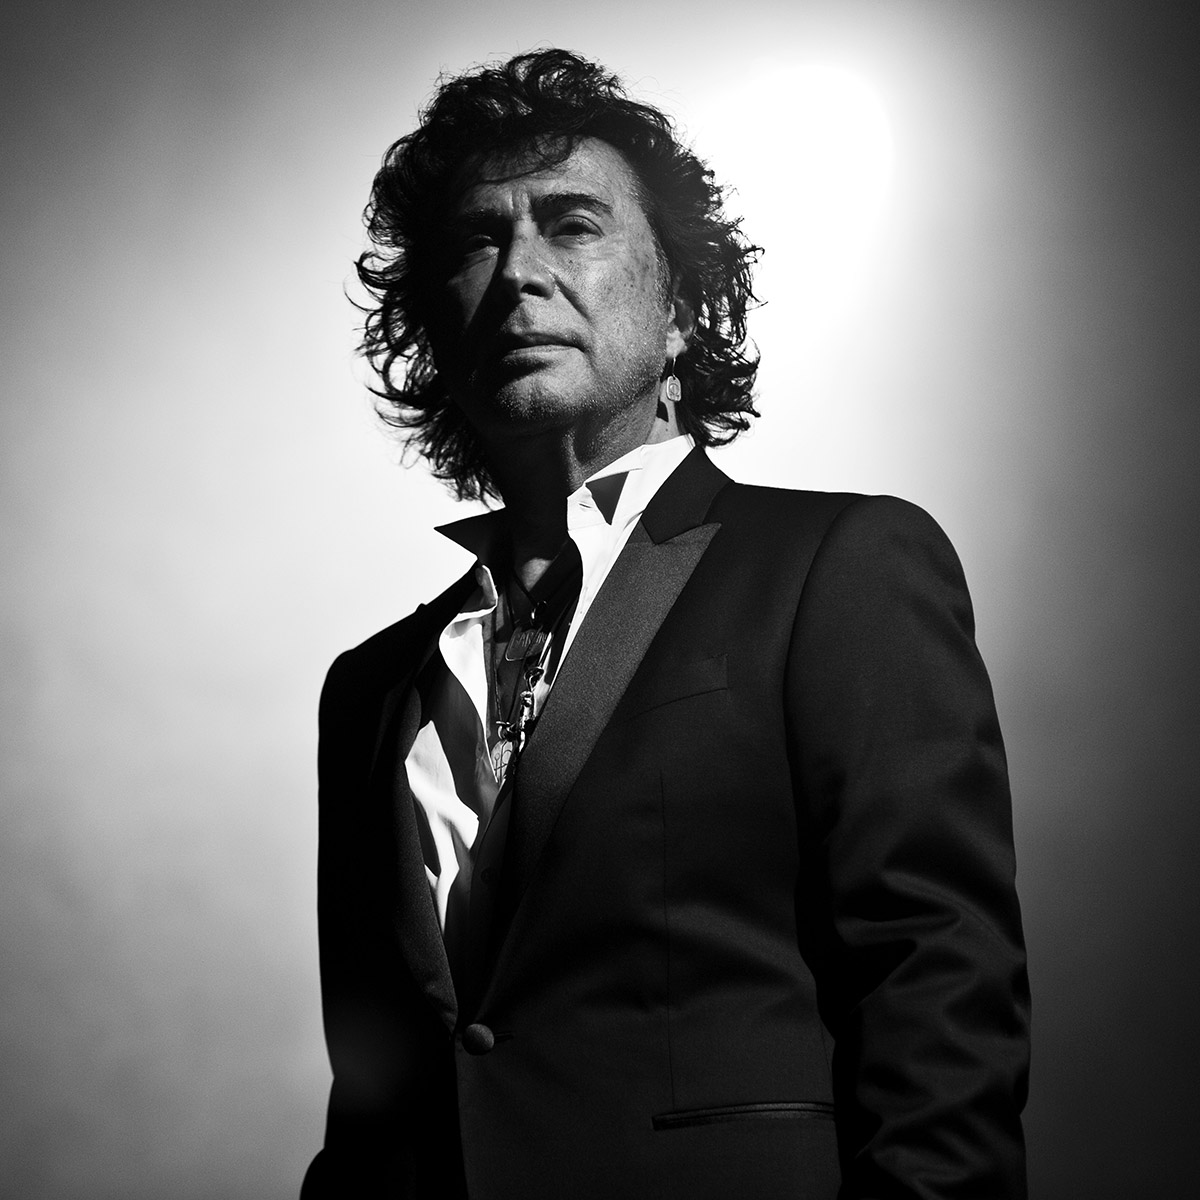 The 16th Annual Andy Kim Christmas is going National on Saturday, December 19th